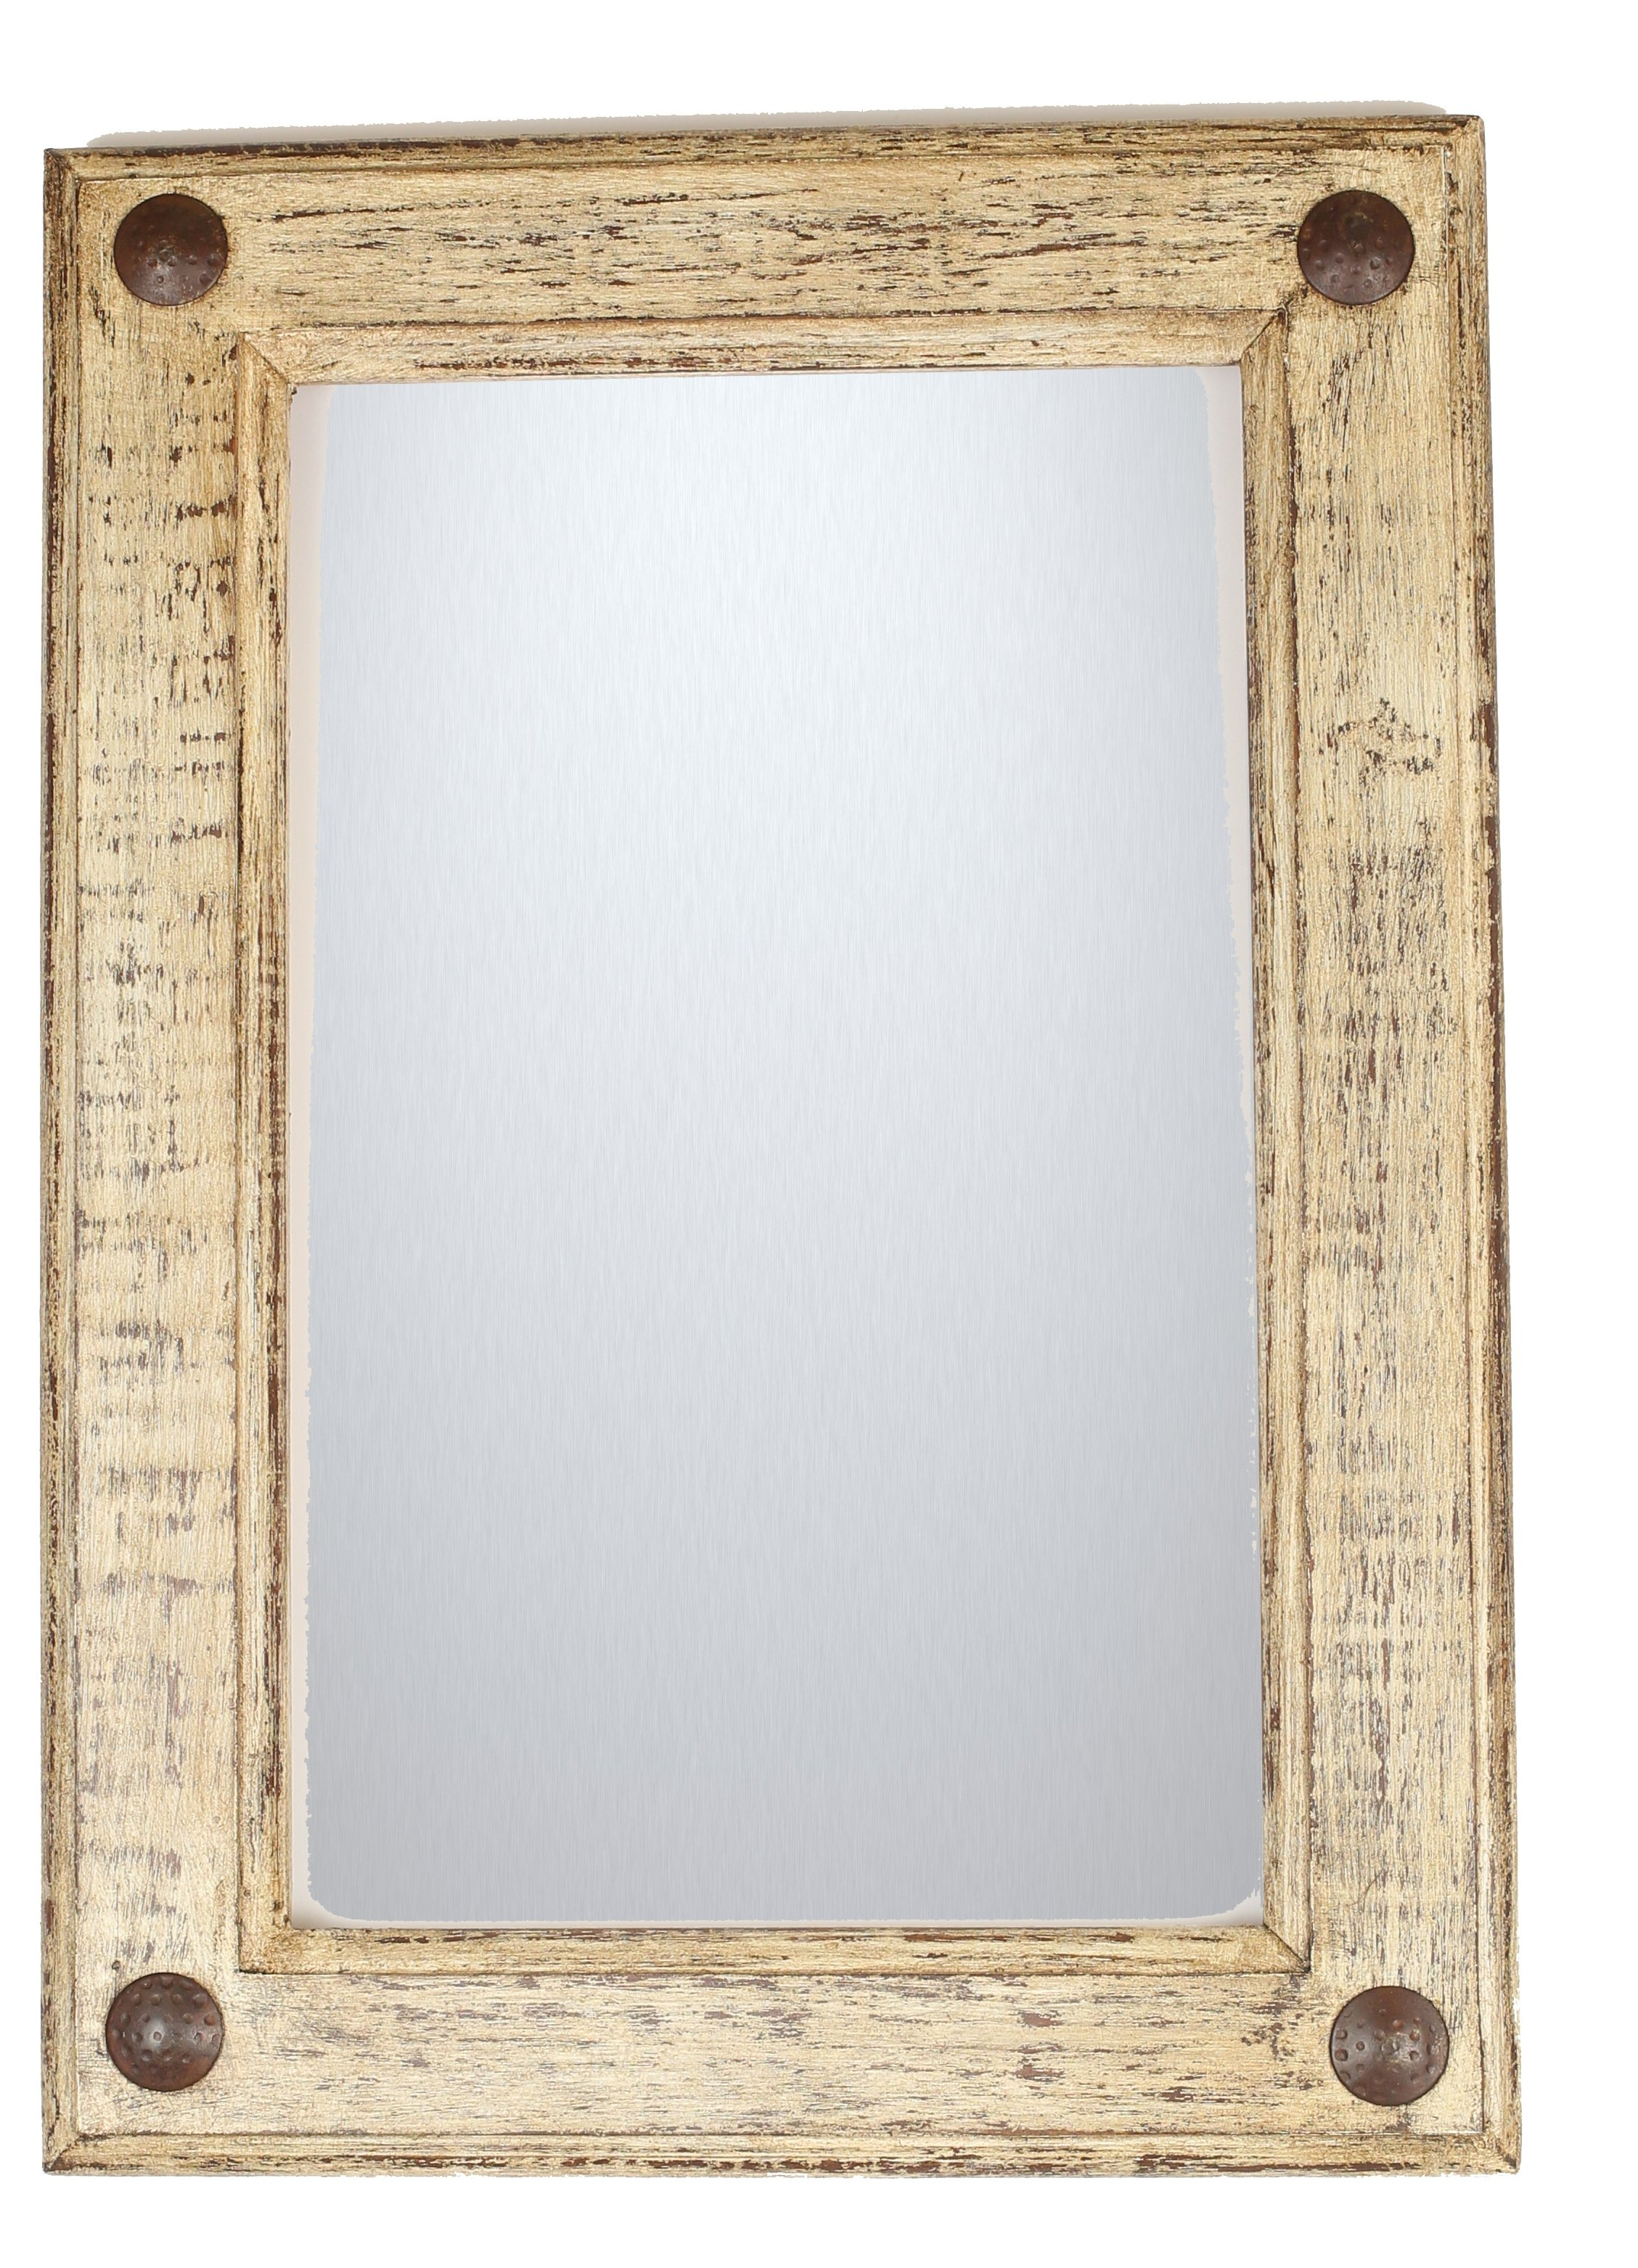 Lajoie Rustic Accent Mirrors Regarding Newest Shabby Rustic Accent Mirror (View 12 of 20)